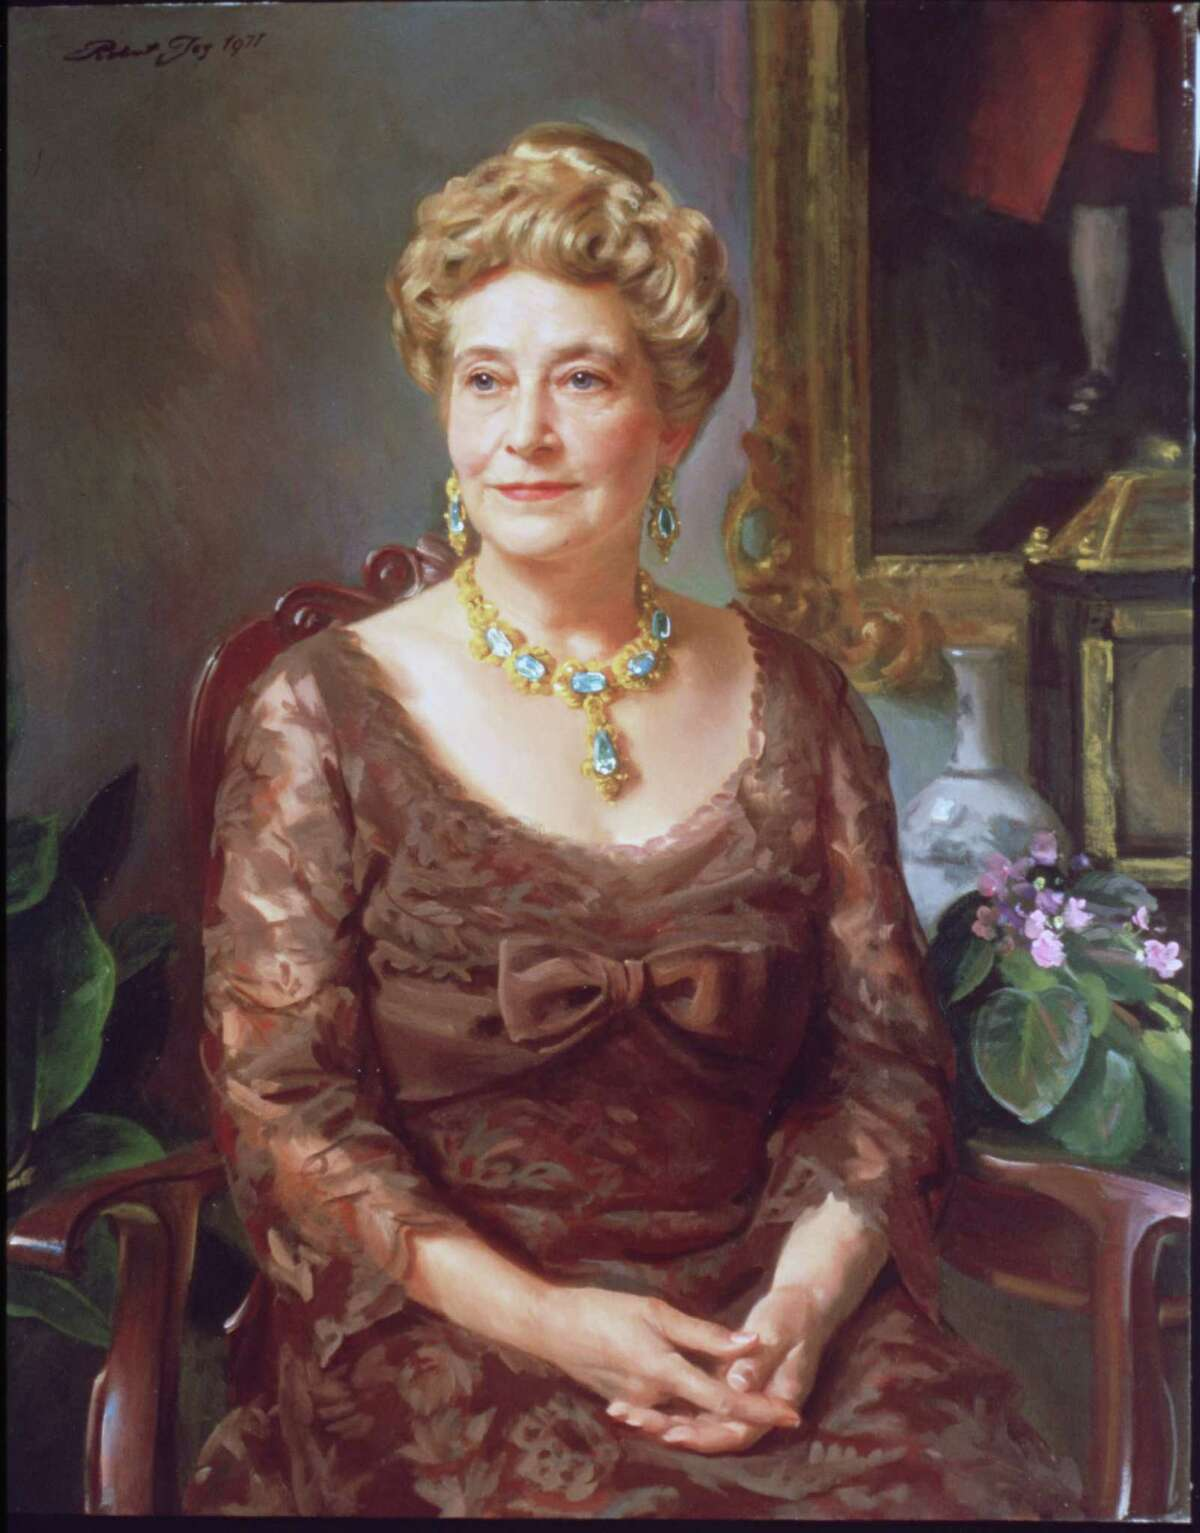 This painting of Ima Hogg, by Robert Joy, is at the Museum of Fine Arts, Houston. Hogg was a philanthropist who supported many causes, including the arts.